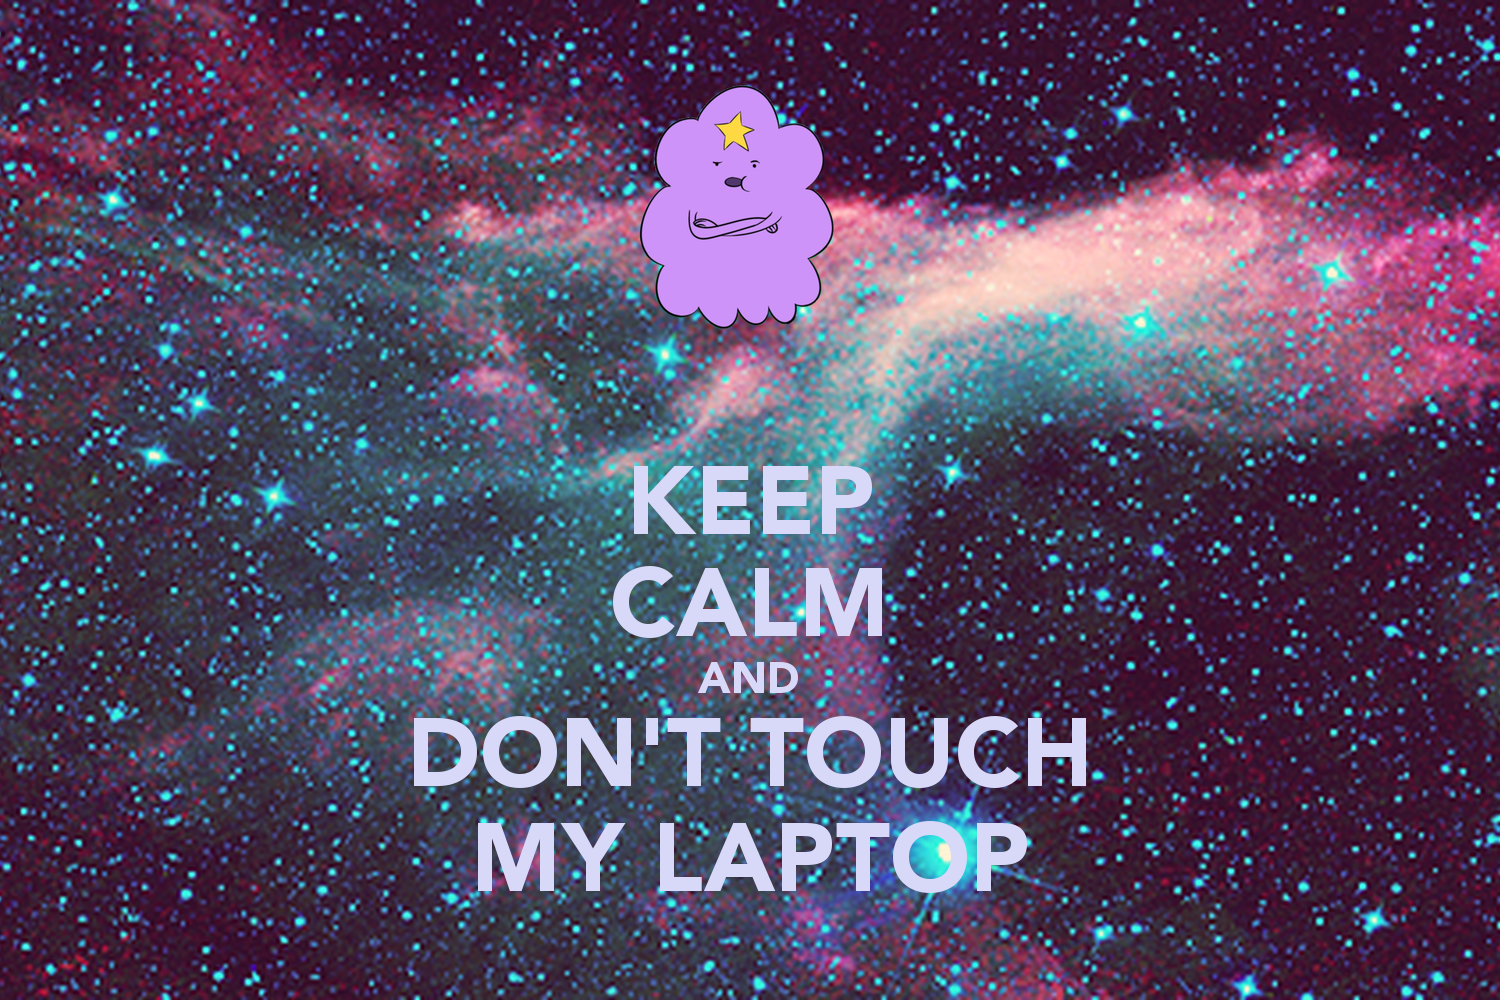 1500x1000 47+] Don't Touch My Computer Wallpaper on WallpaperSafari